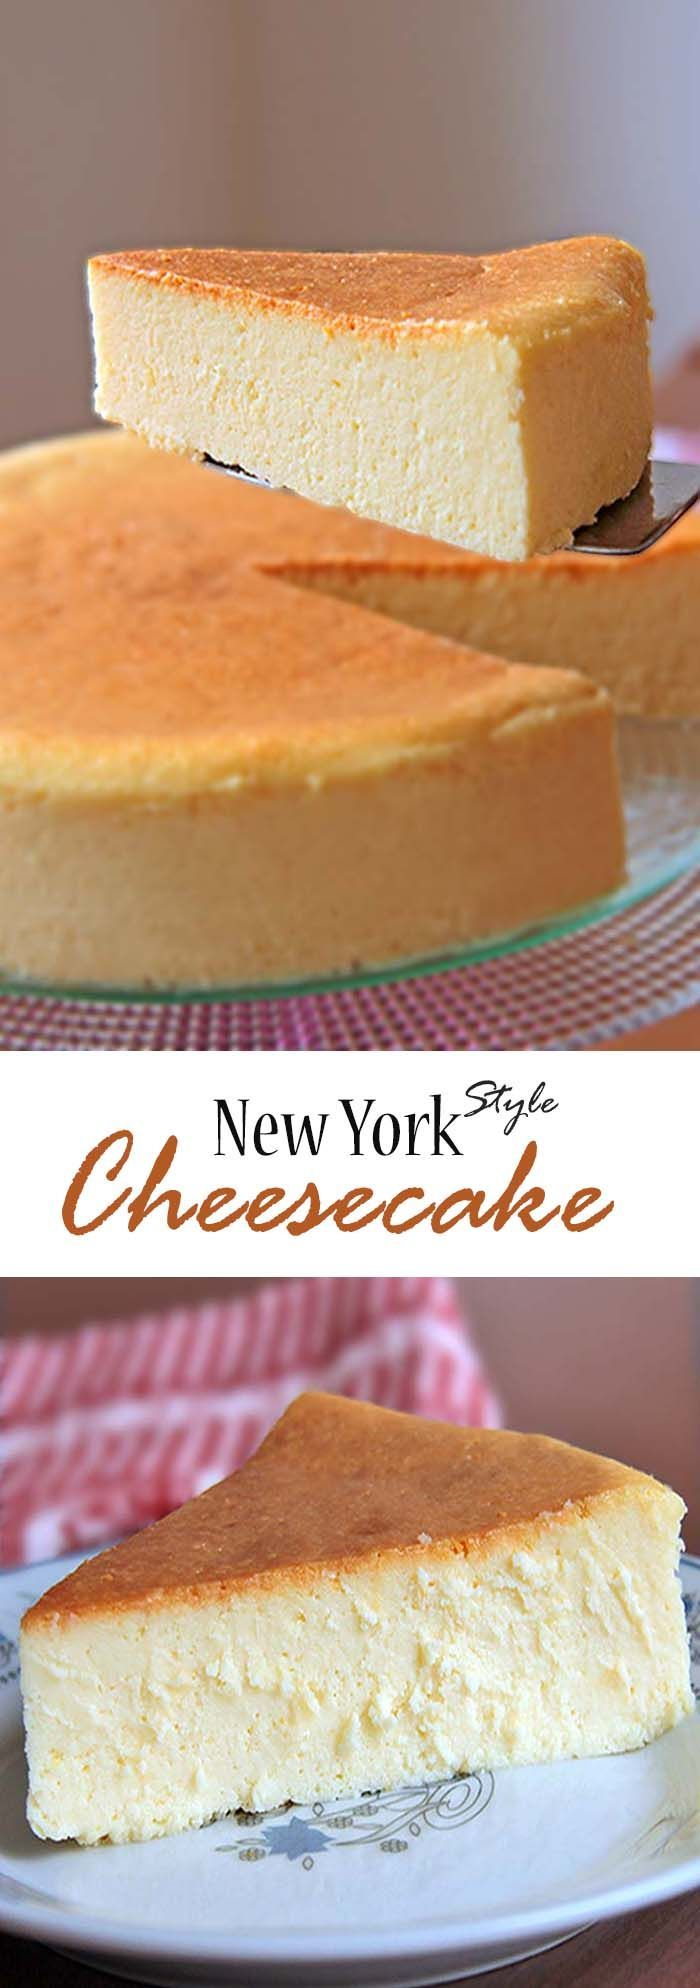 New York Style Cheesecake is creamy smooth, lightly sweet, with a touch of lemon.